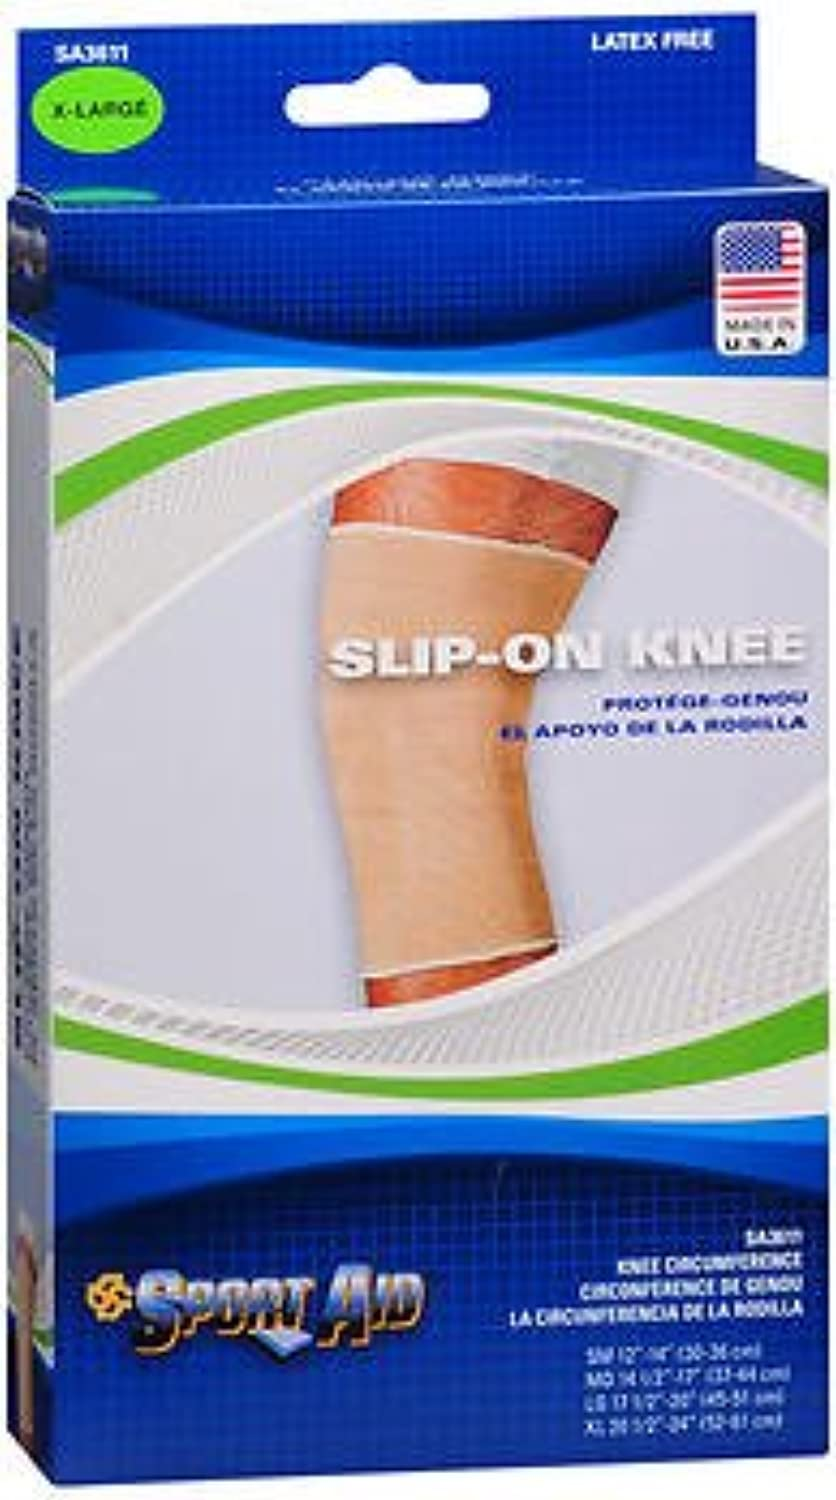 Sport Aid SlipOn Knee Wrap XL Beige  1 ea., Pack of 4